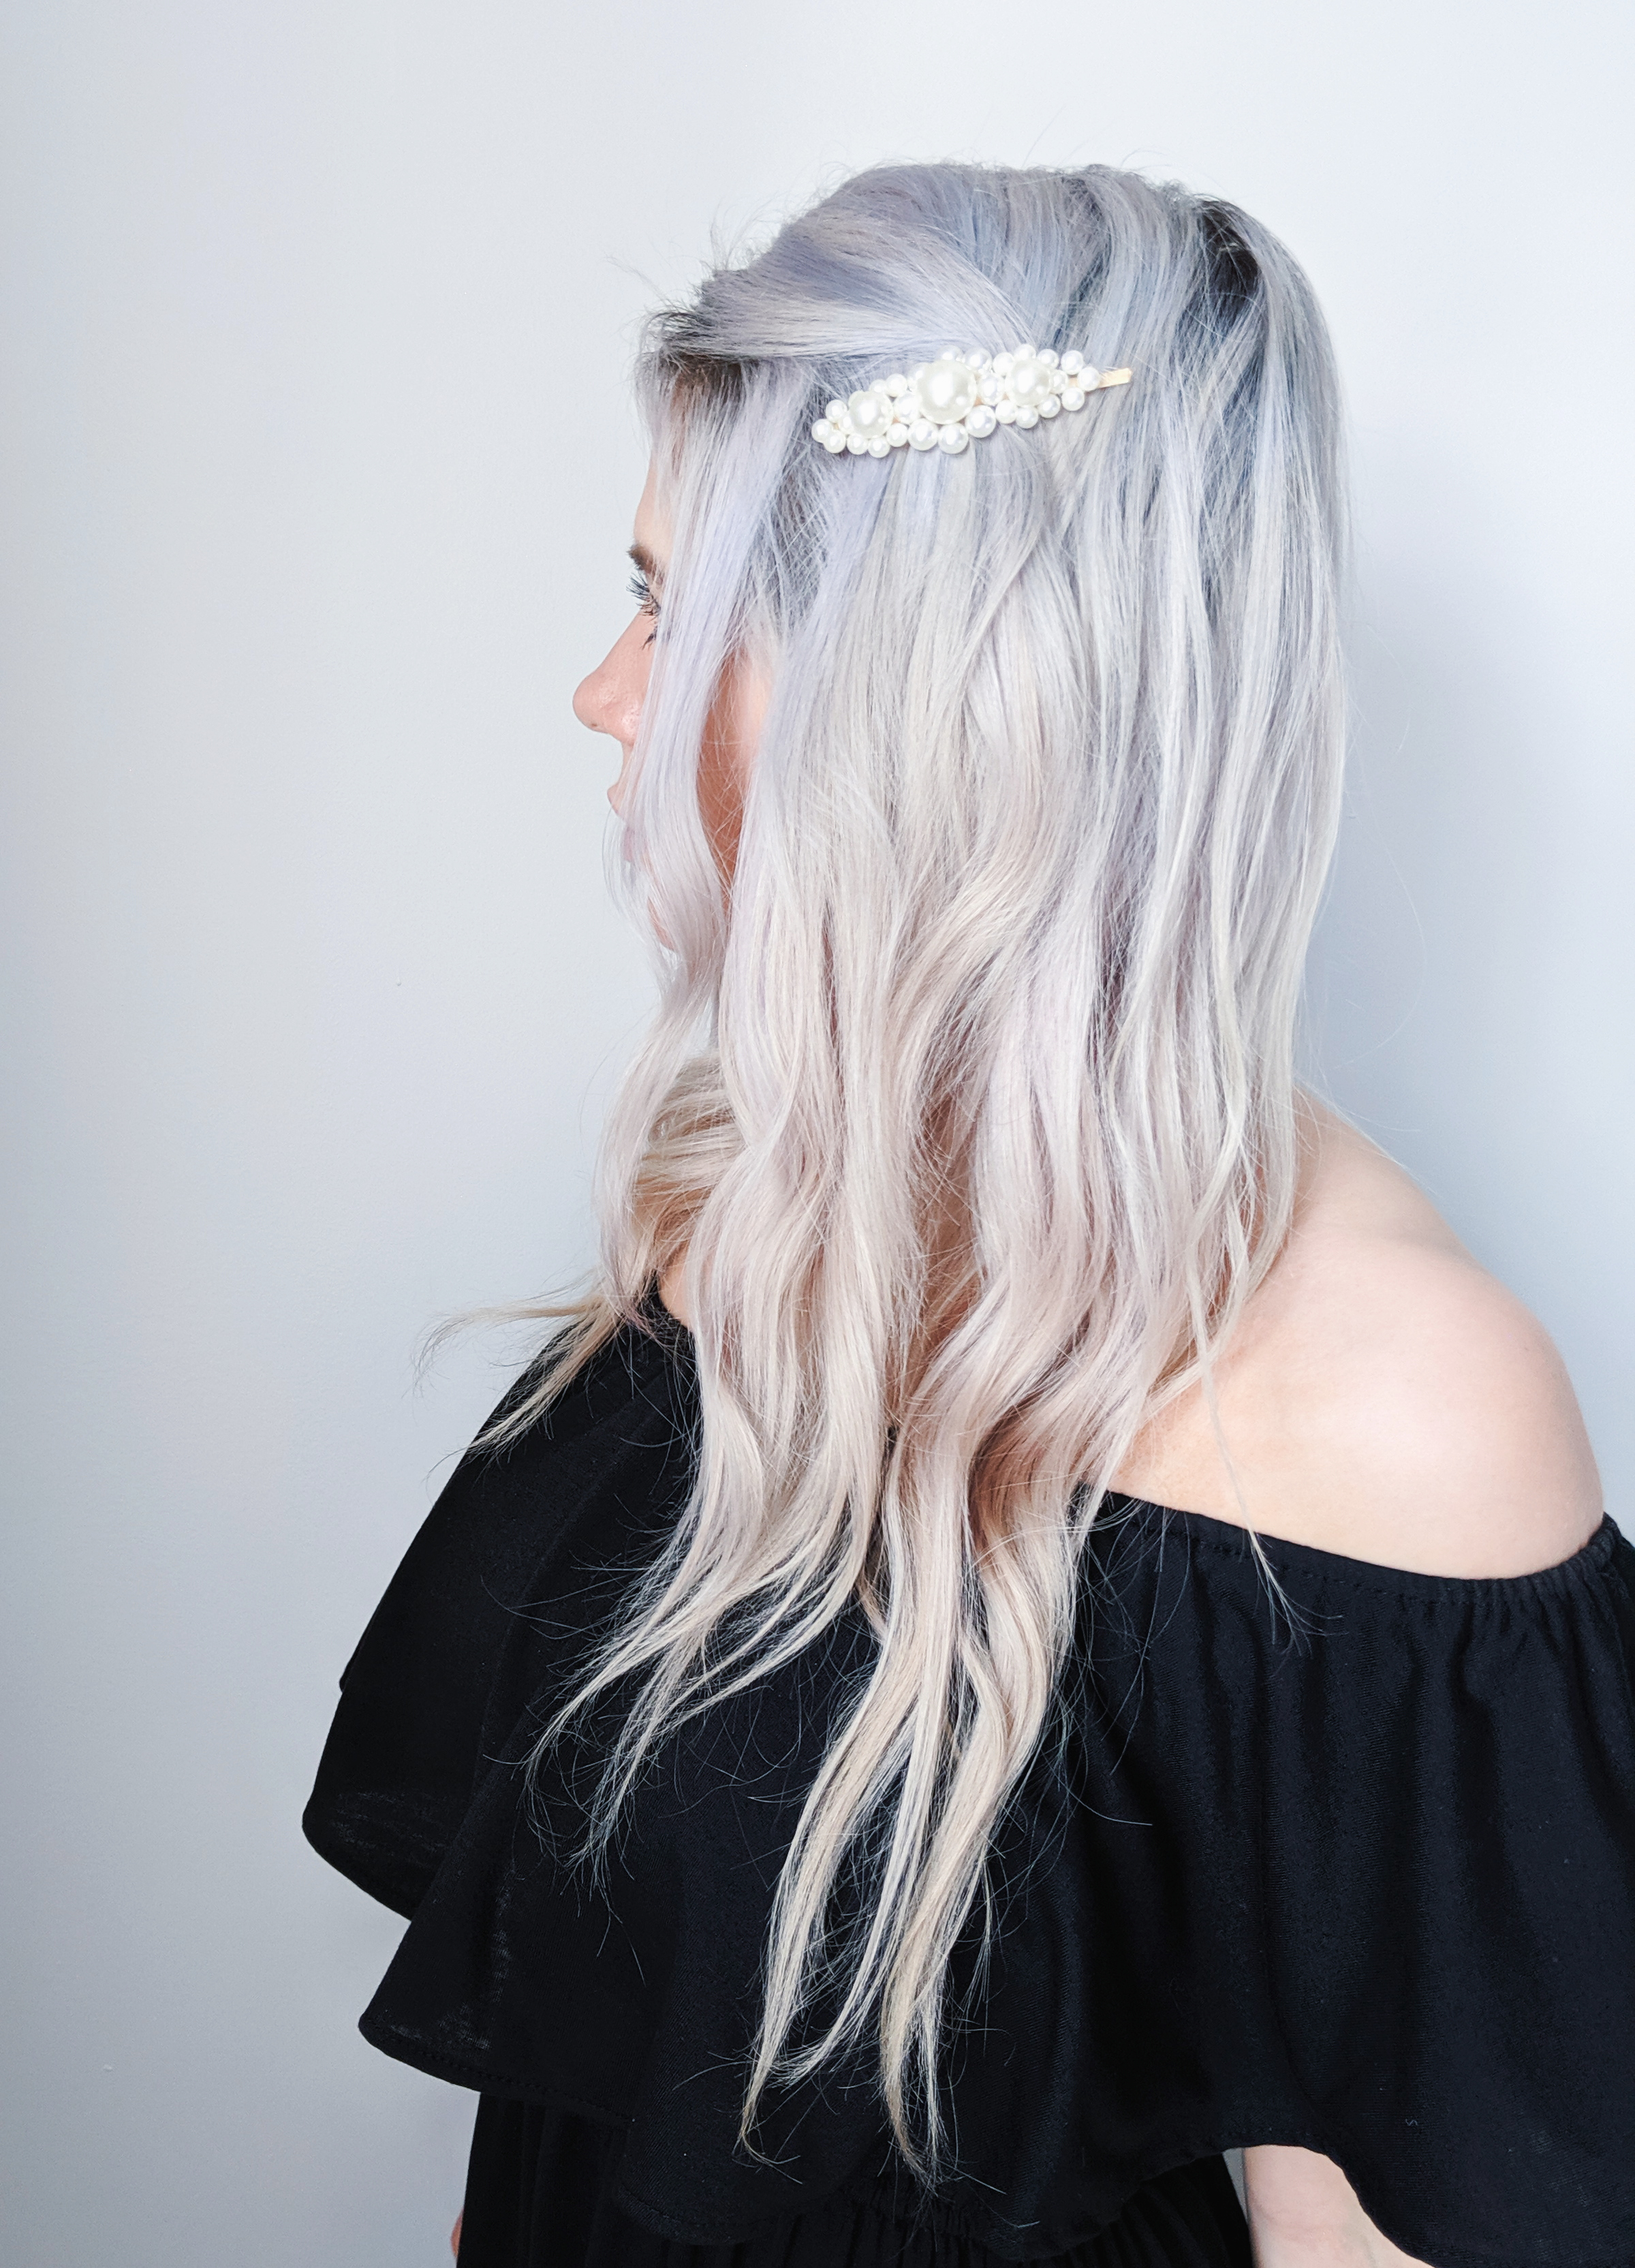 Pearl Barrette Hairstyles - Hair Styles for Pearl Clips Barrettes: 5 hair styles you can do with pearl barrettes, the hottest of the 2019 hair trends! These easy hairstyles will elevate your look in seconds. #hairstyles #hairinspo #pearlbarrettes